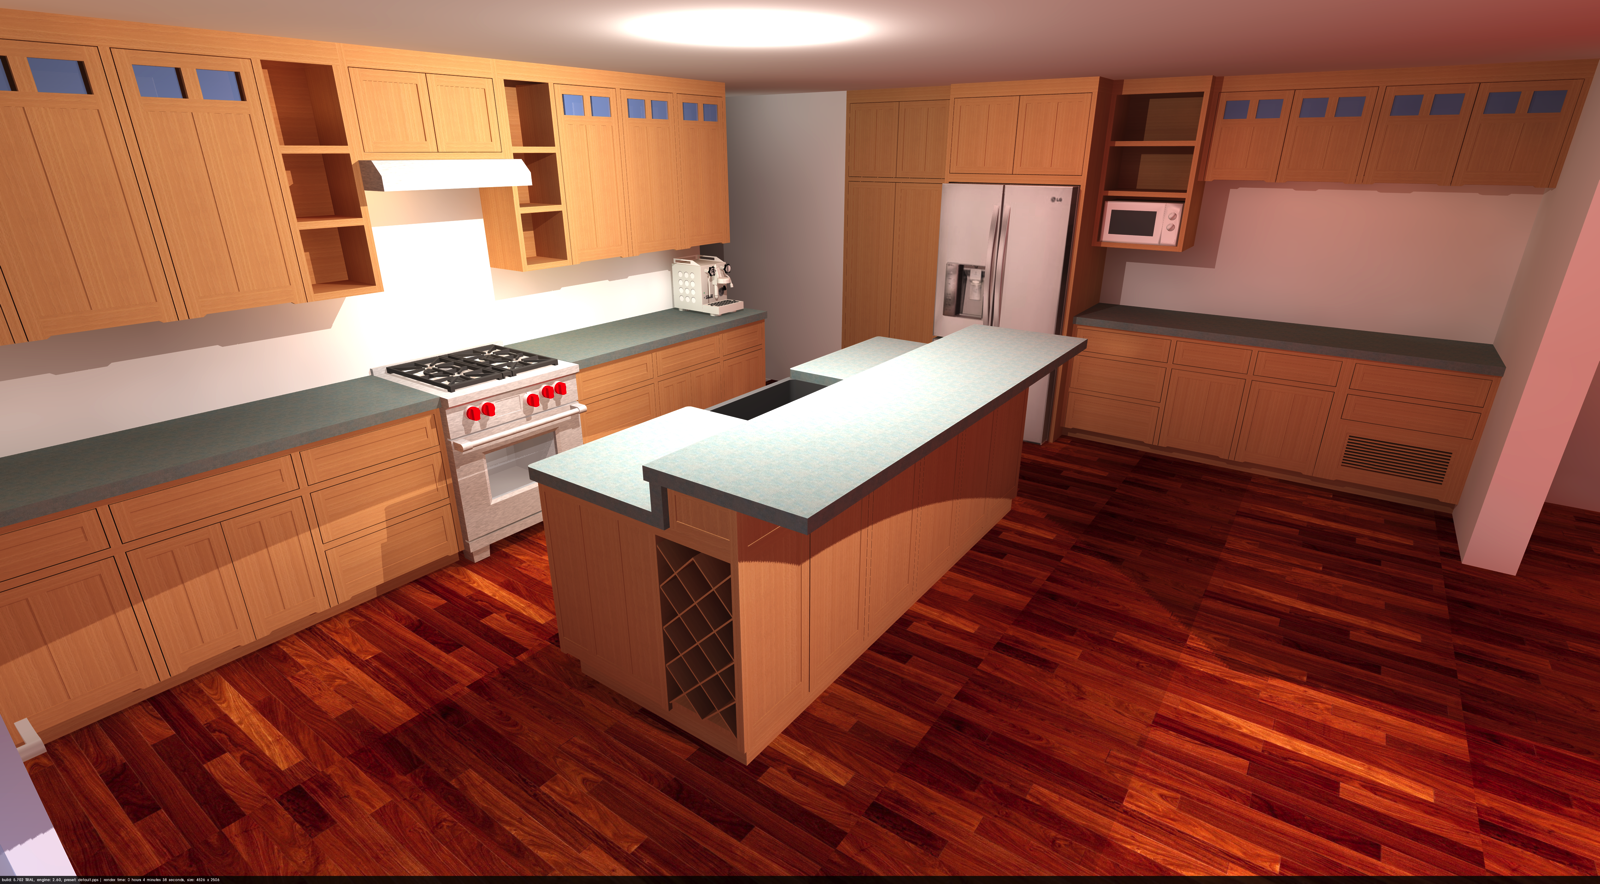 Kitchen Layout In Sketchup Follow Along On This Kitchen S Progress At Corbin S Treehouse Kitchen Layout Kitchen Cabinets Kitchen